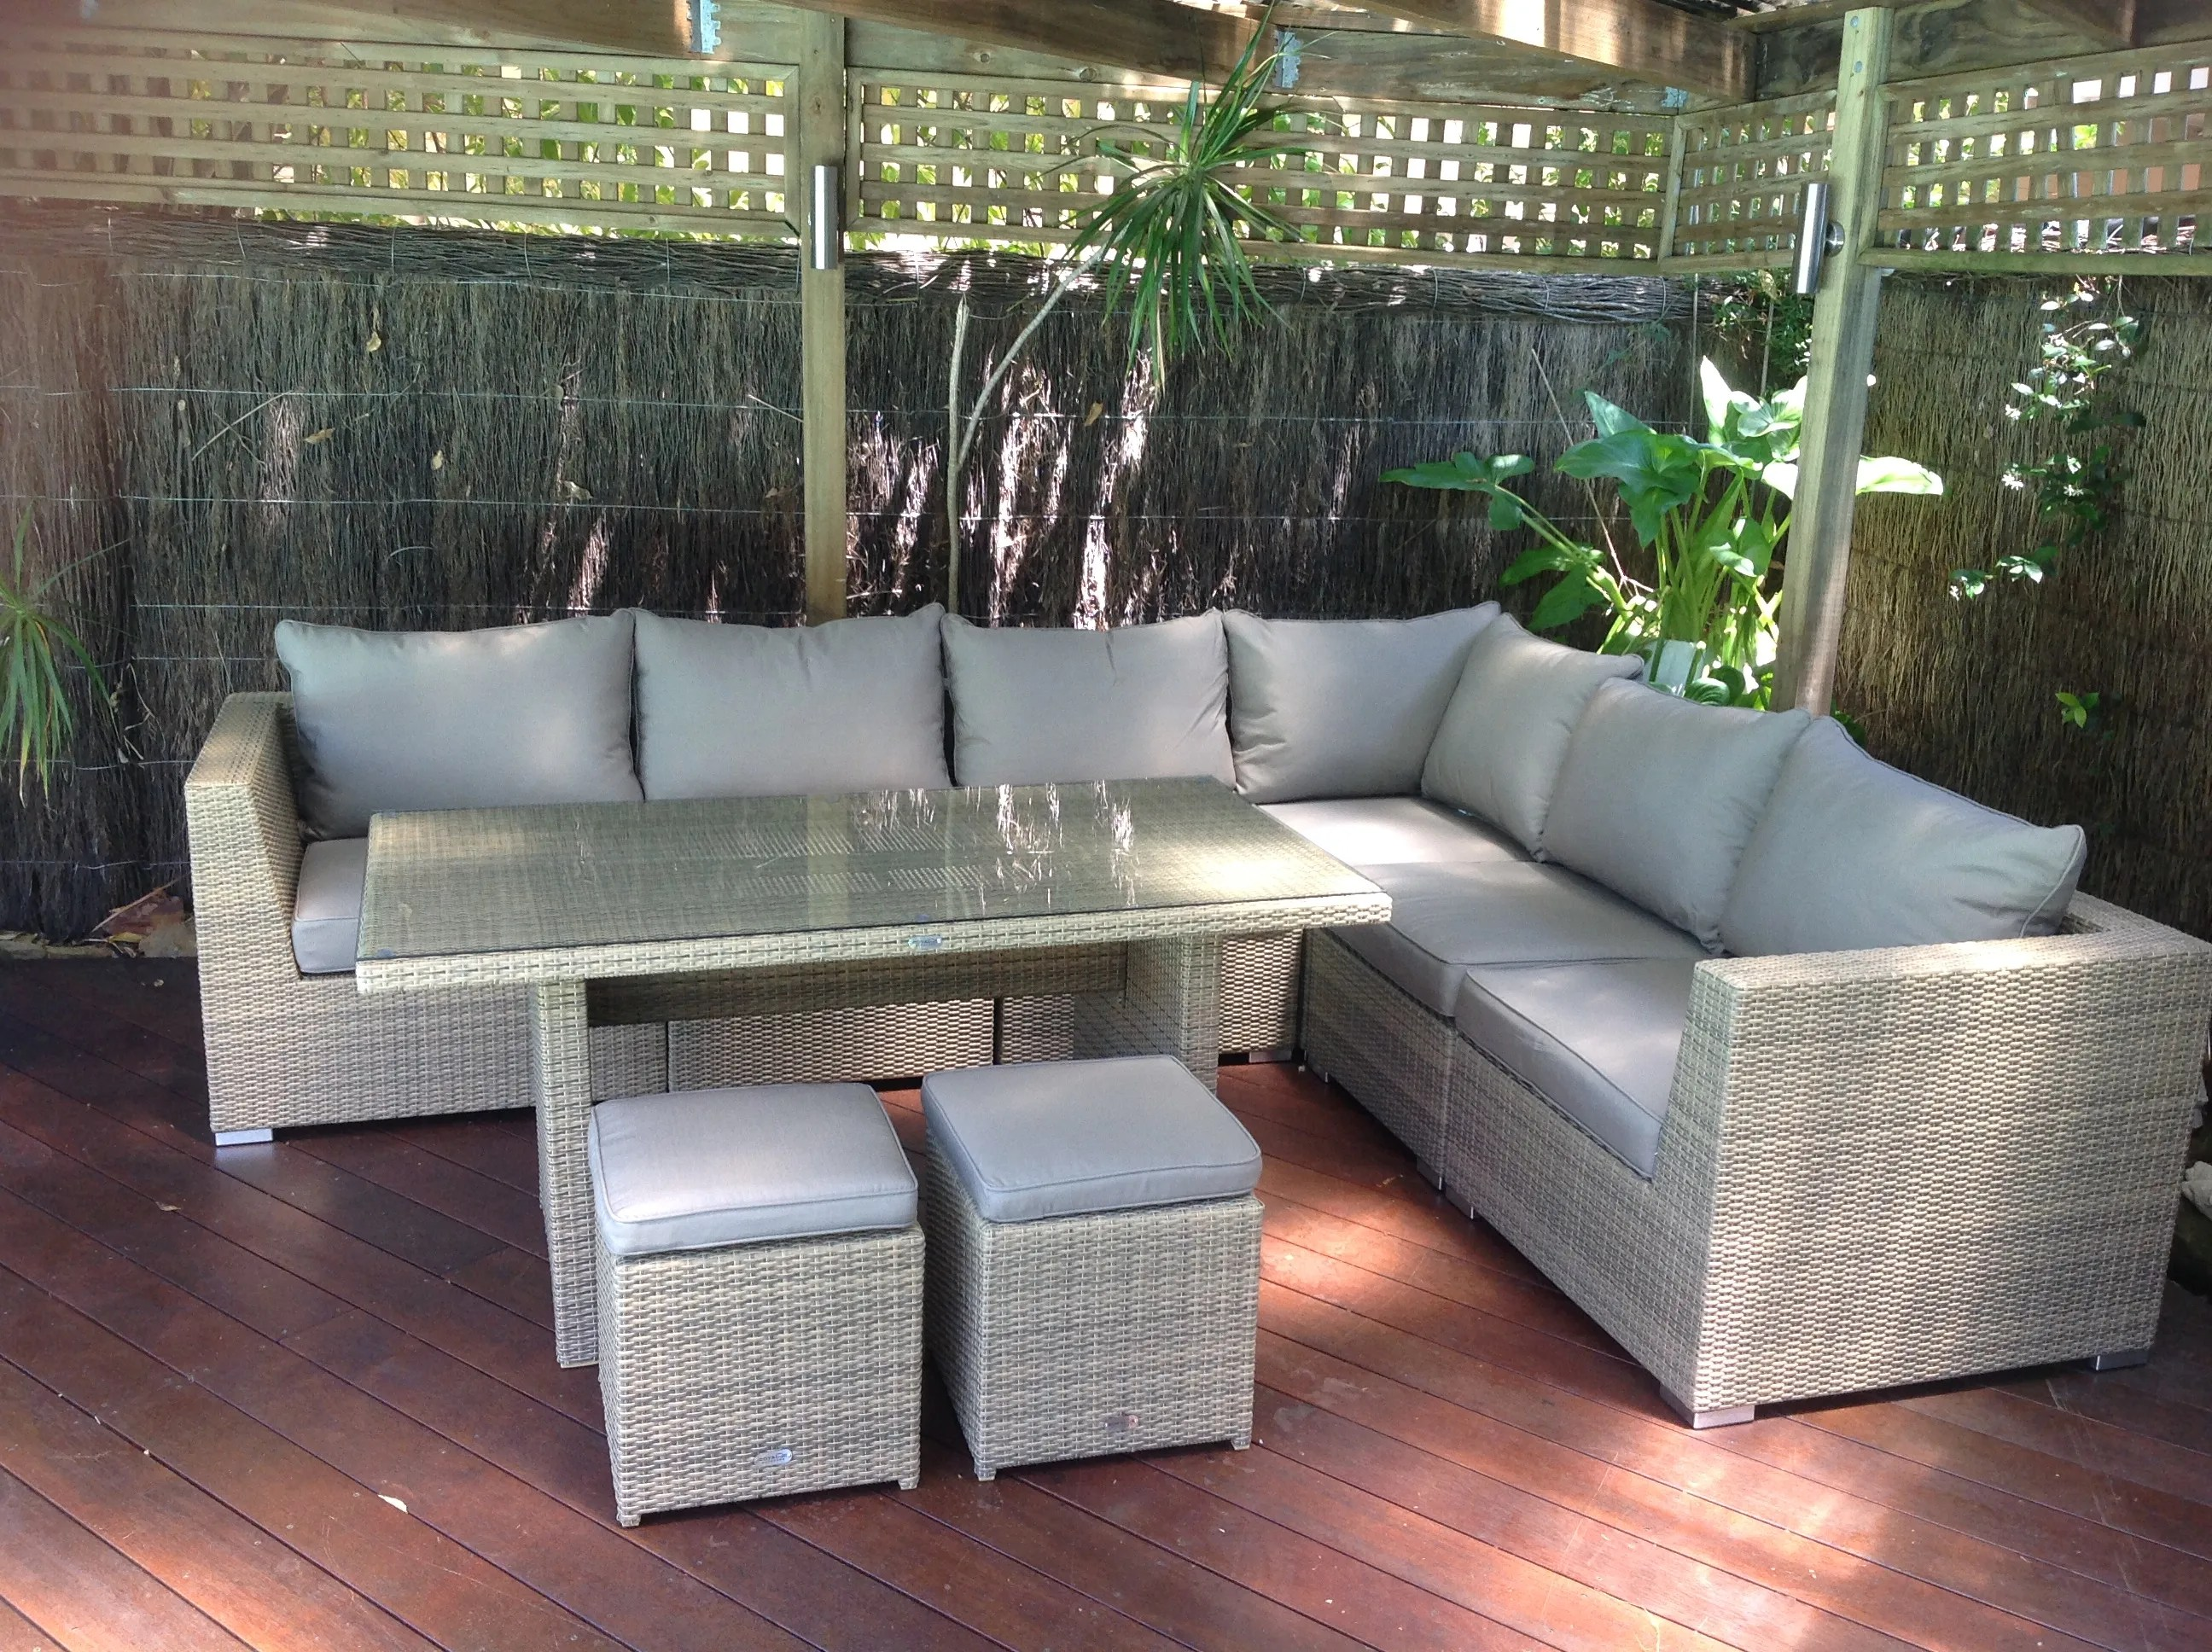 Lounge Clearance Brisbane Outdoor Furniture Evolution Dining Out In Comfort